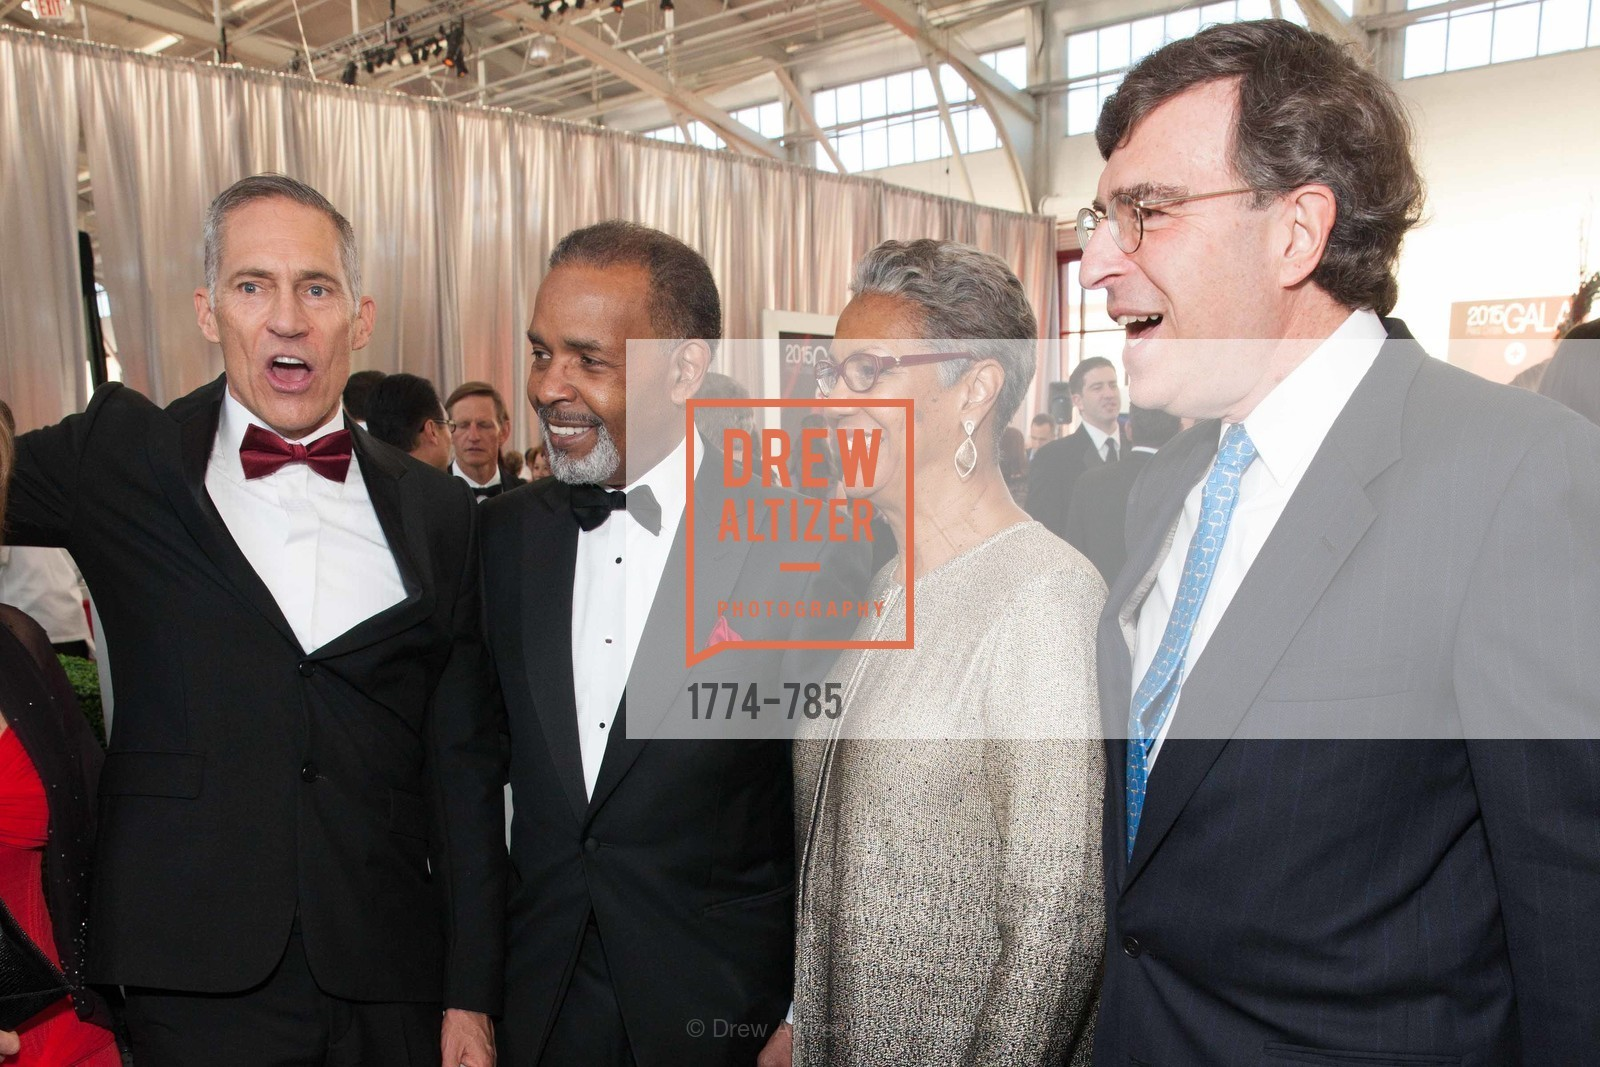 Mark Cloutier, Joe Madison, Sharon Madison, Neal Litvack, 2015 RED CROSS Gala, US, April 12th, 2015,Drew Altizer, Drew Altizer Photography, full-service agency, private events, San Francisco photographer, photographer california